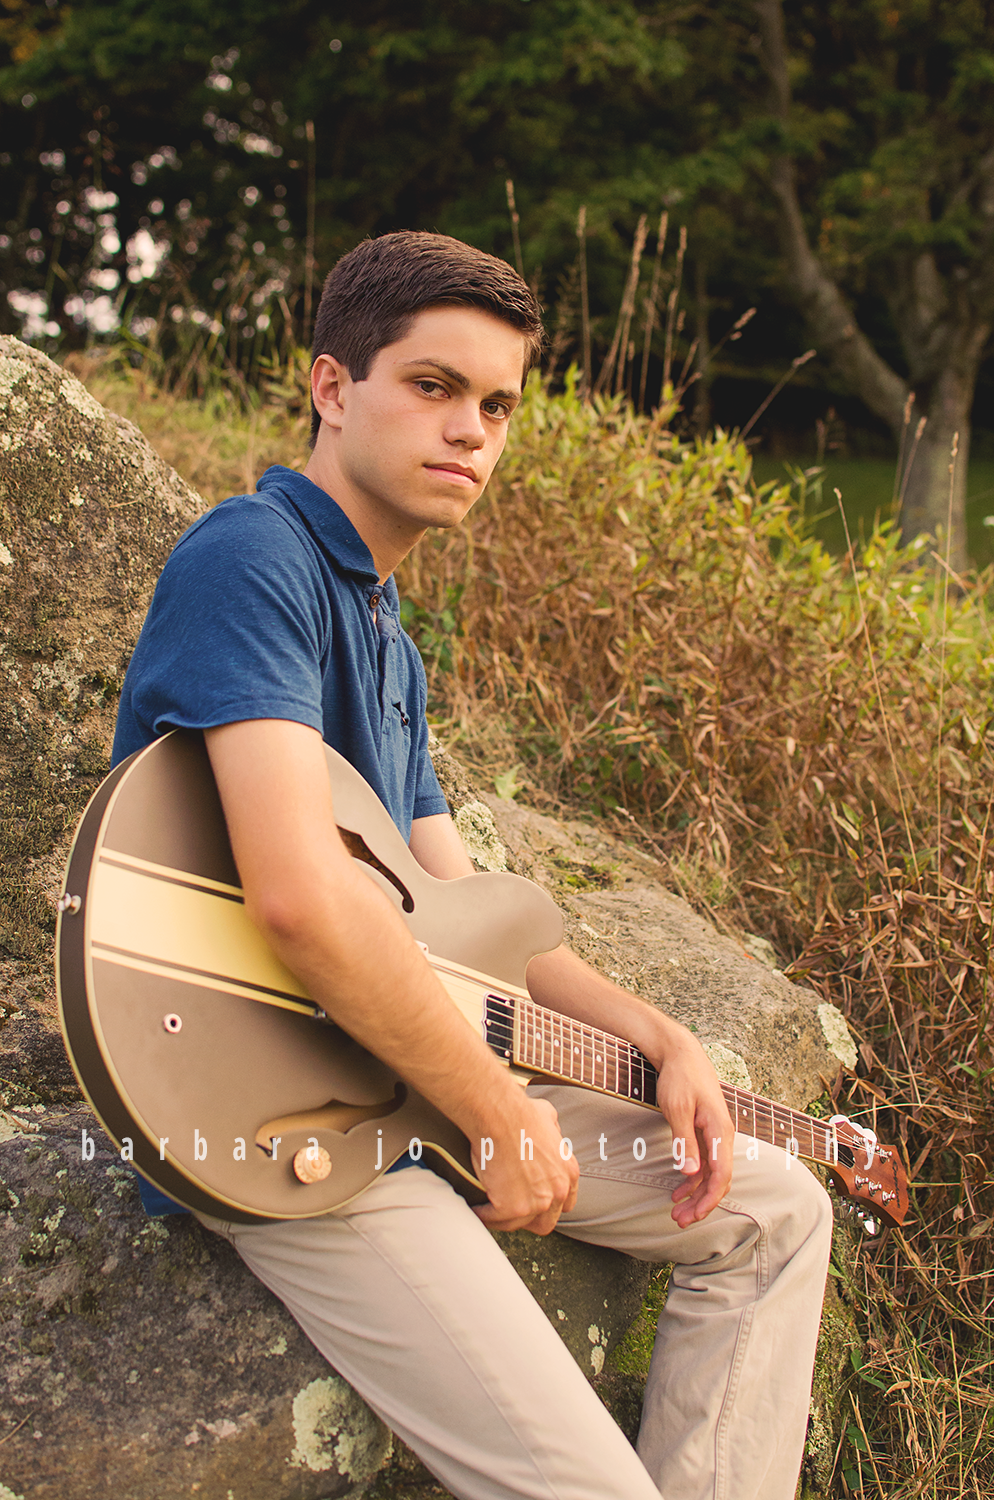 bjp-senior-portraits-guy-photographer-dover-nphs-ohio-drum-band-rock-quaker-tyler3.png